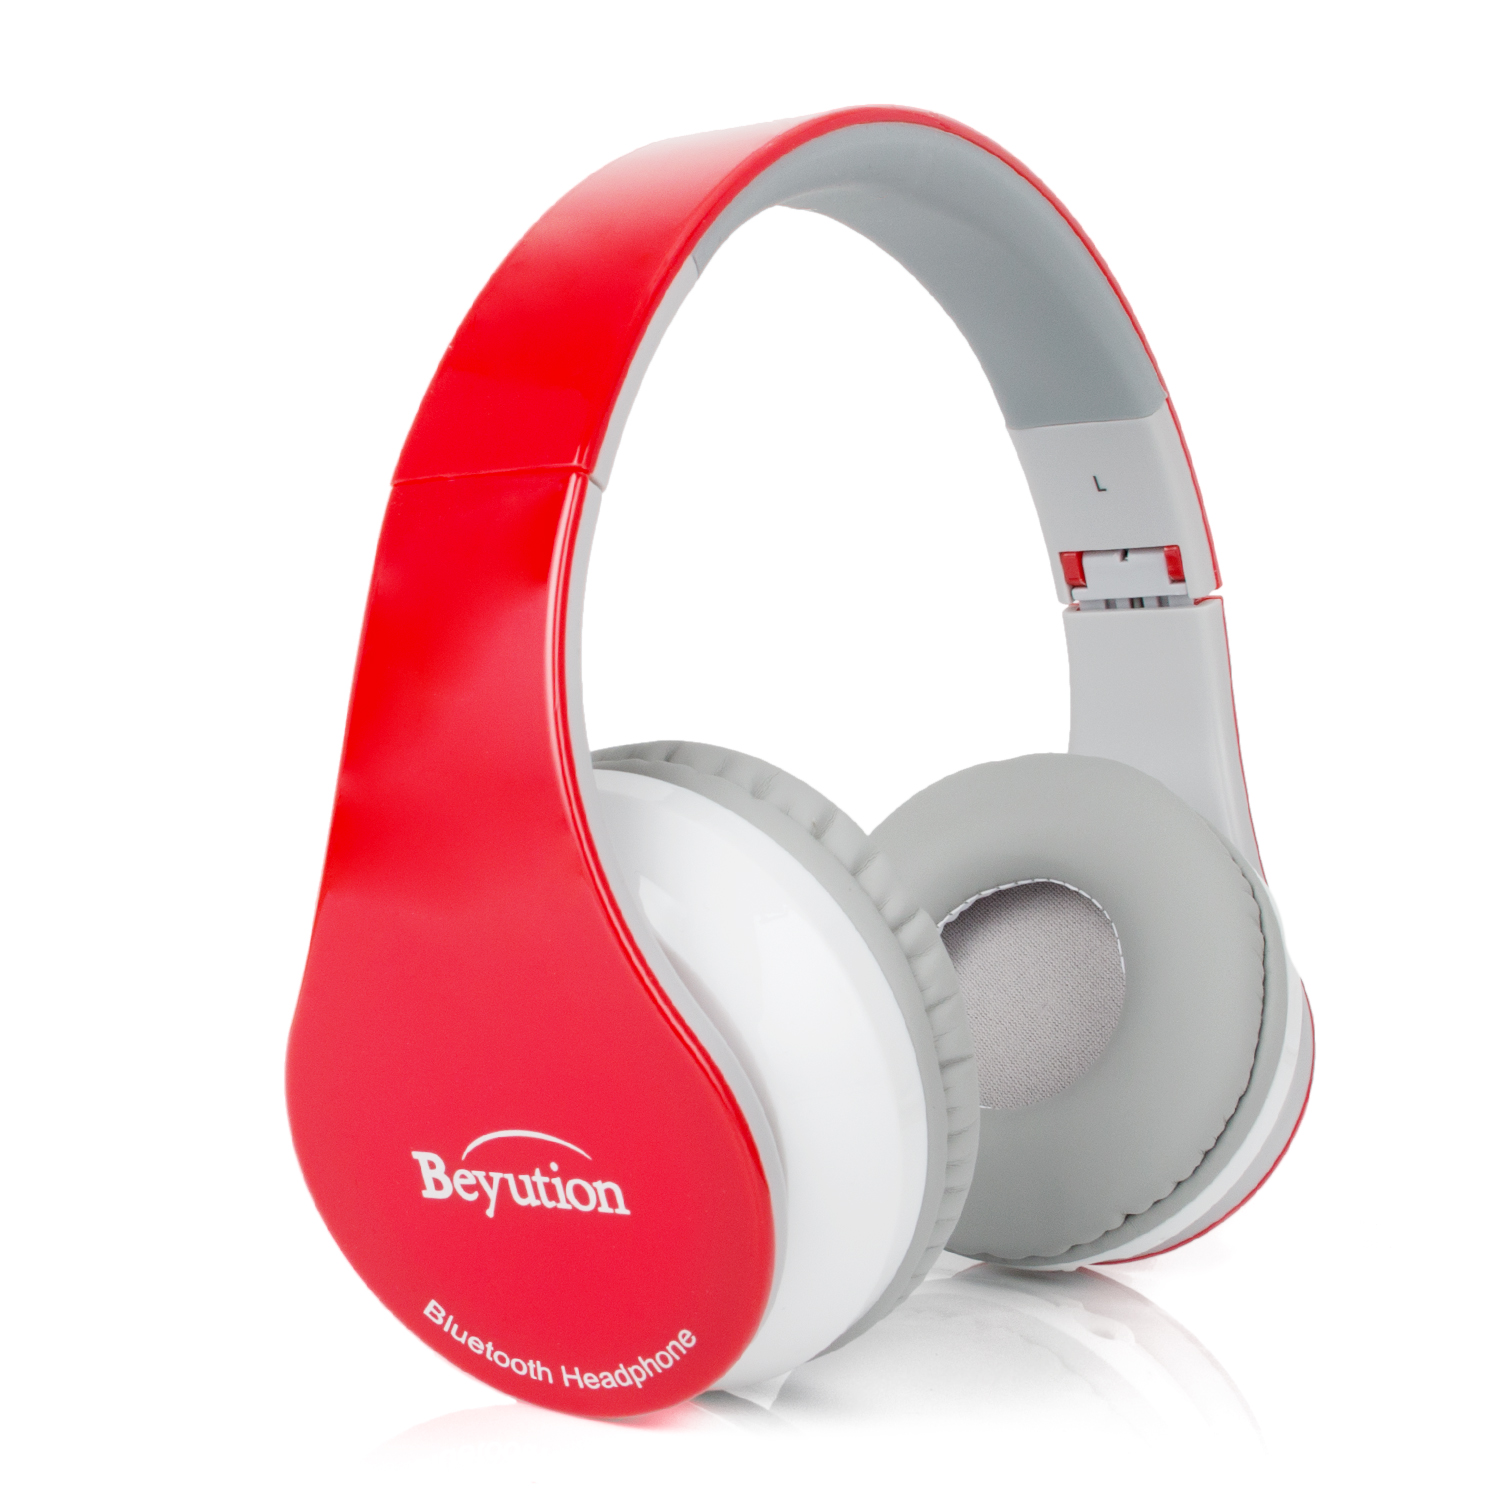 Beyution V4.1 Bluetooth Headphones Wireless Foldable Hi-fi Stereo Headphone with Micphone for Smart Phones & Tablets - Red